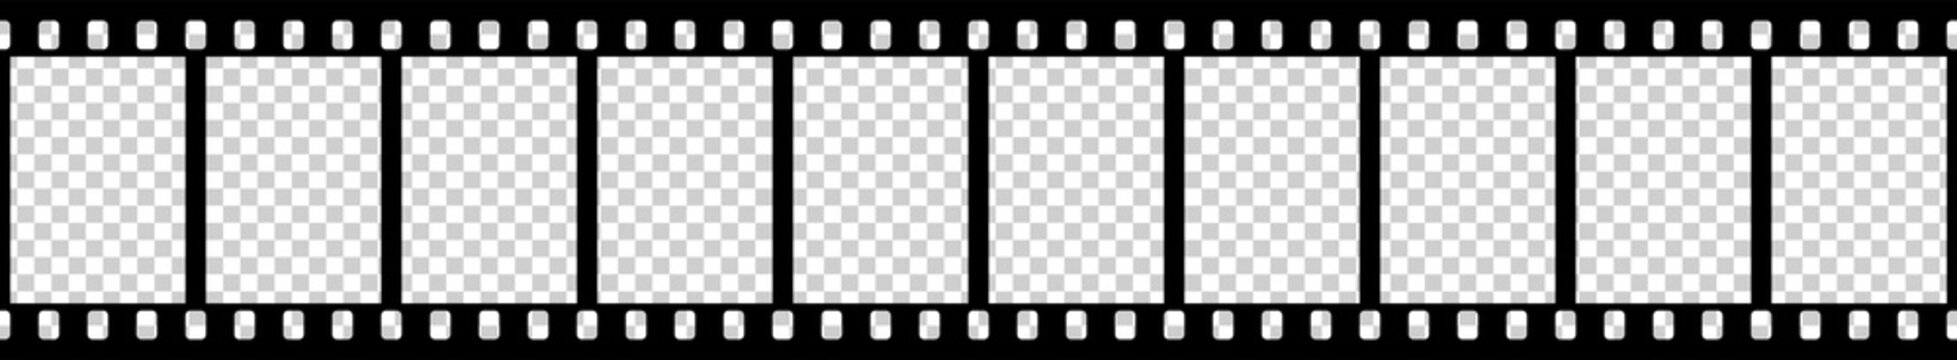 Black and white camera film template. Right angles of the frame. Vector illustration.